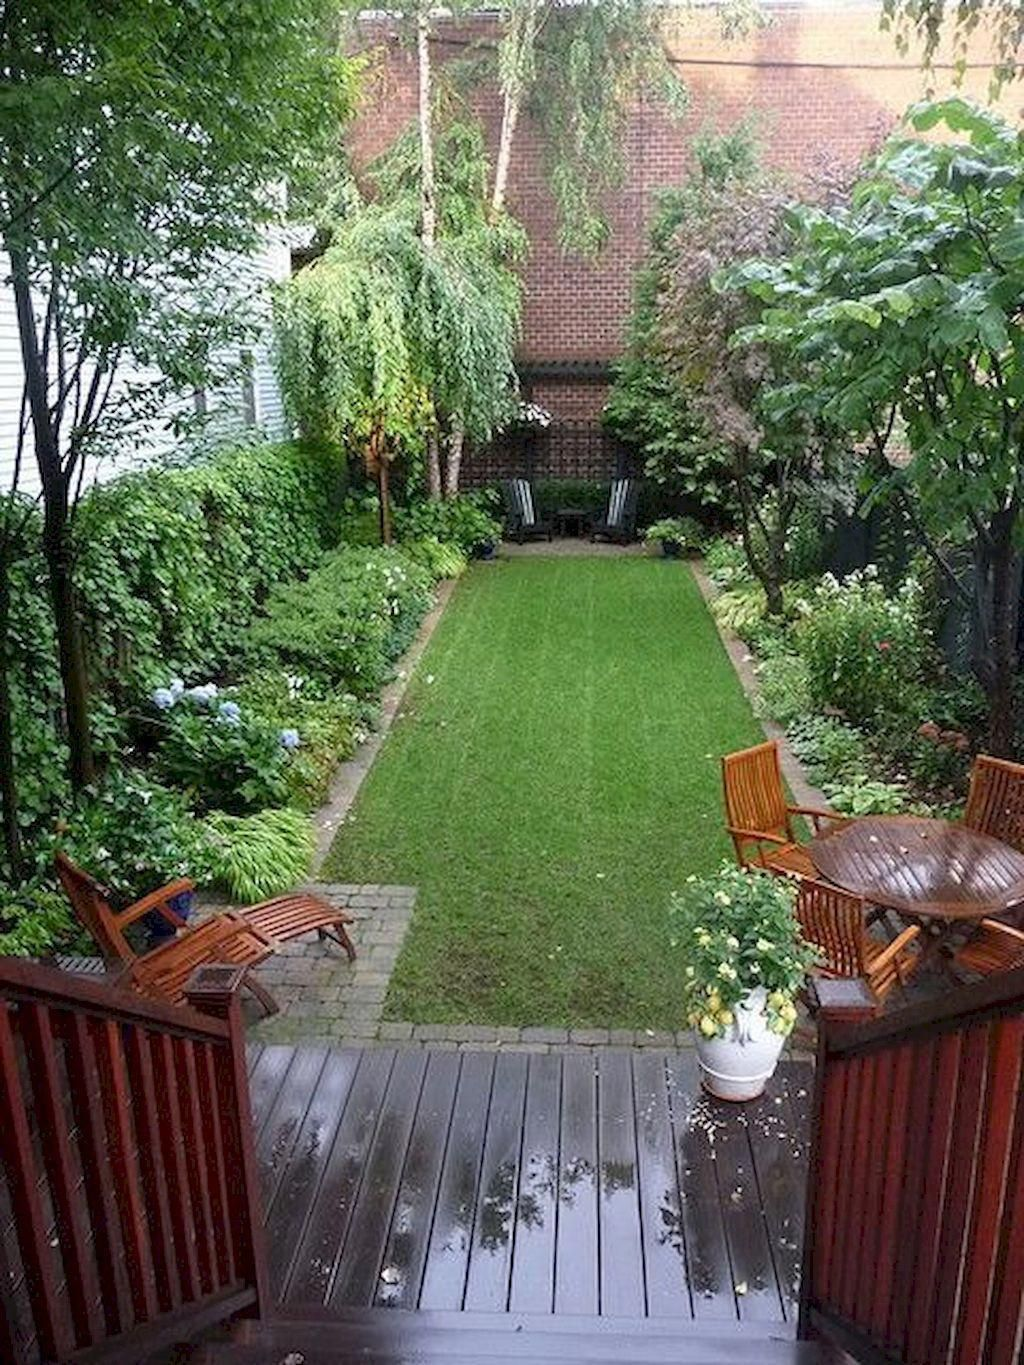 04 gorgeous small front yard landscaping ideas spaciroom on gorgeous small backyard landscaping ideas id=65700